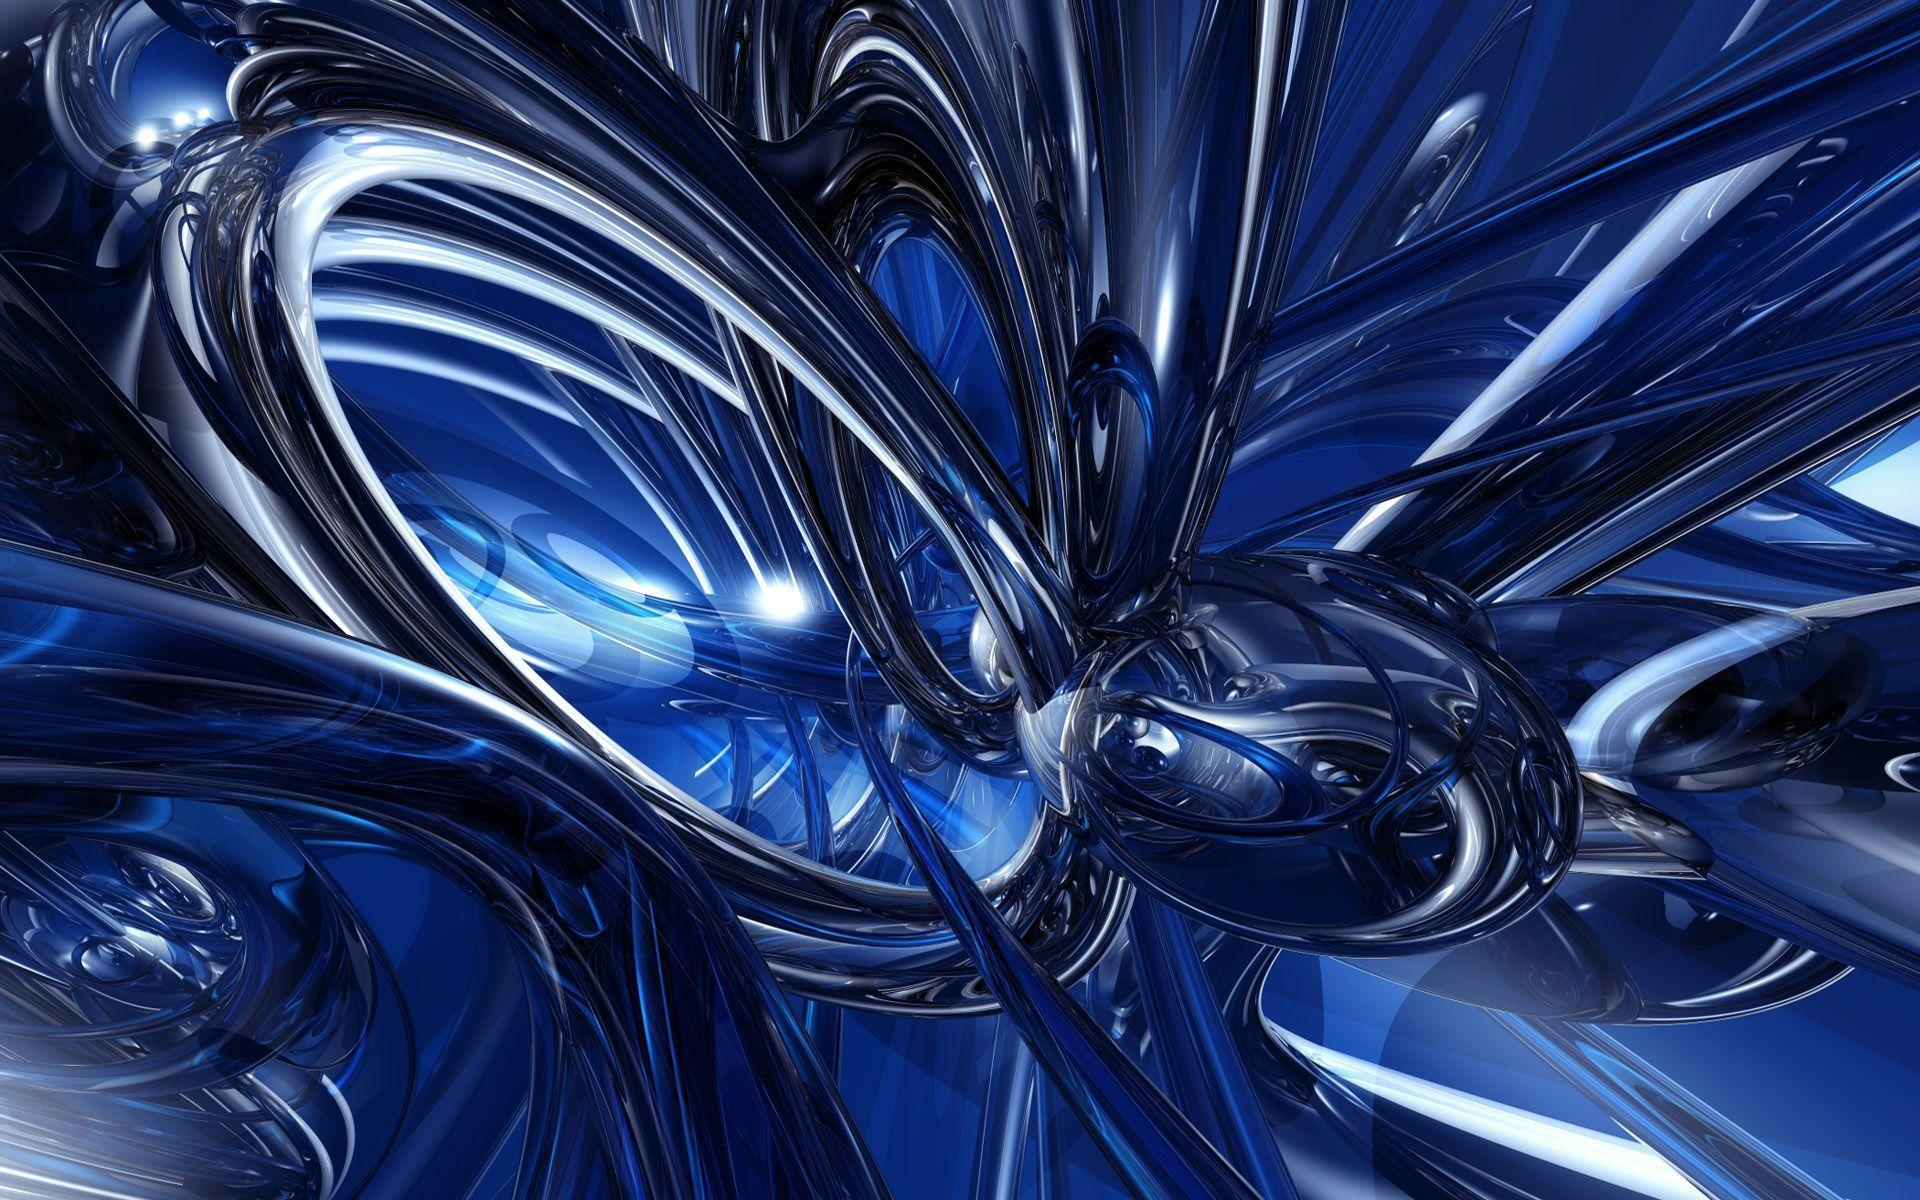 Blue Abstract Wallpapers Hd Backgrounds Wallpapers 42 HD Wallpapers